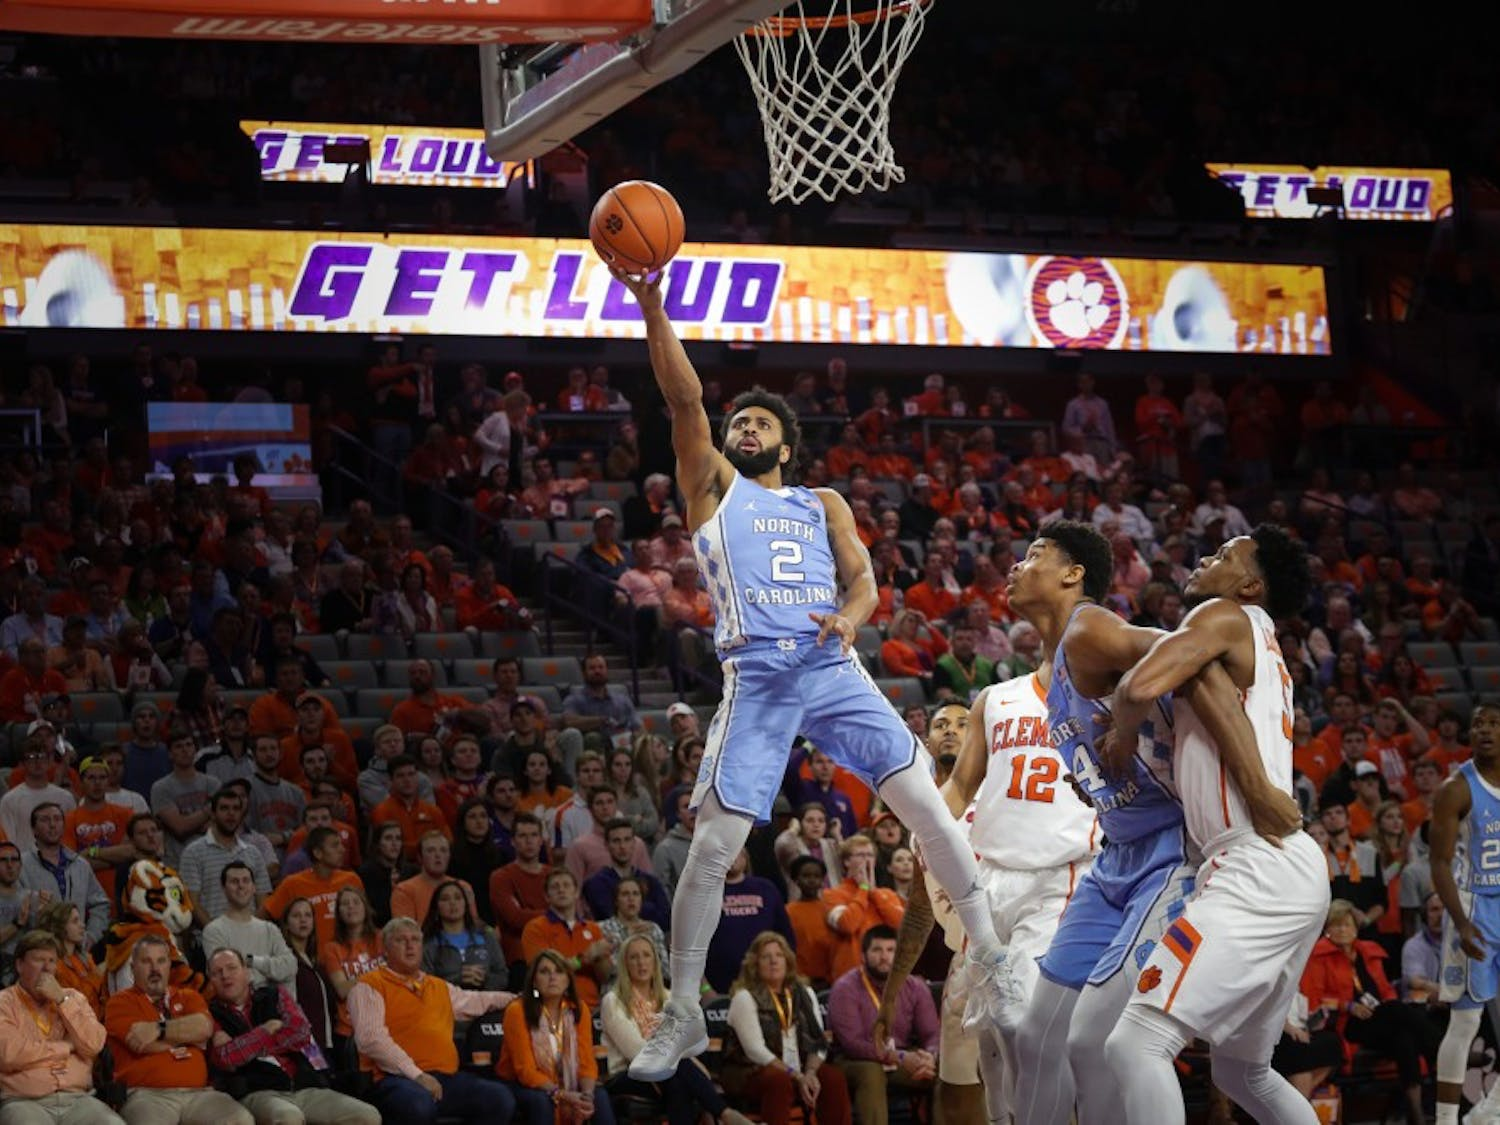 The UNC men's basketball team defeated Clemson 89-86 in overtime on Tuesday night. UNC guard Joel Berry put up a career-high 31 points.